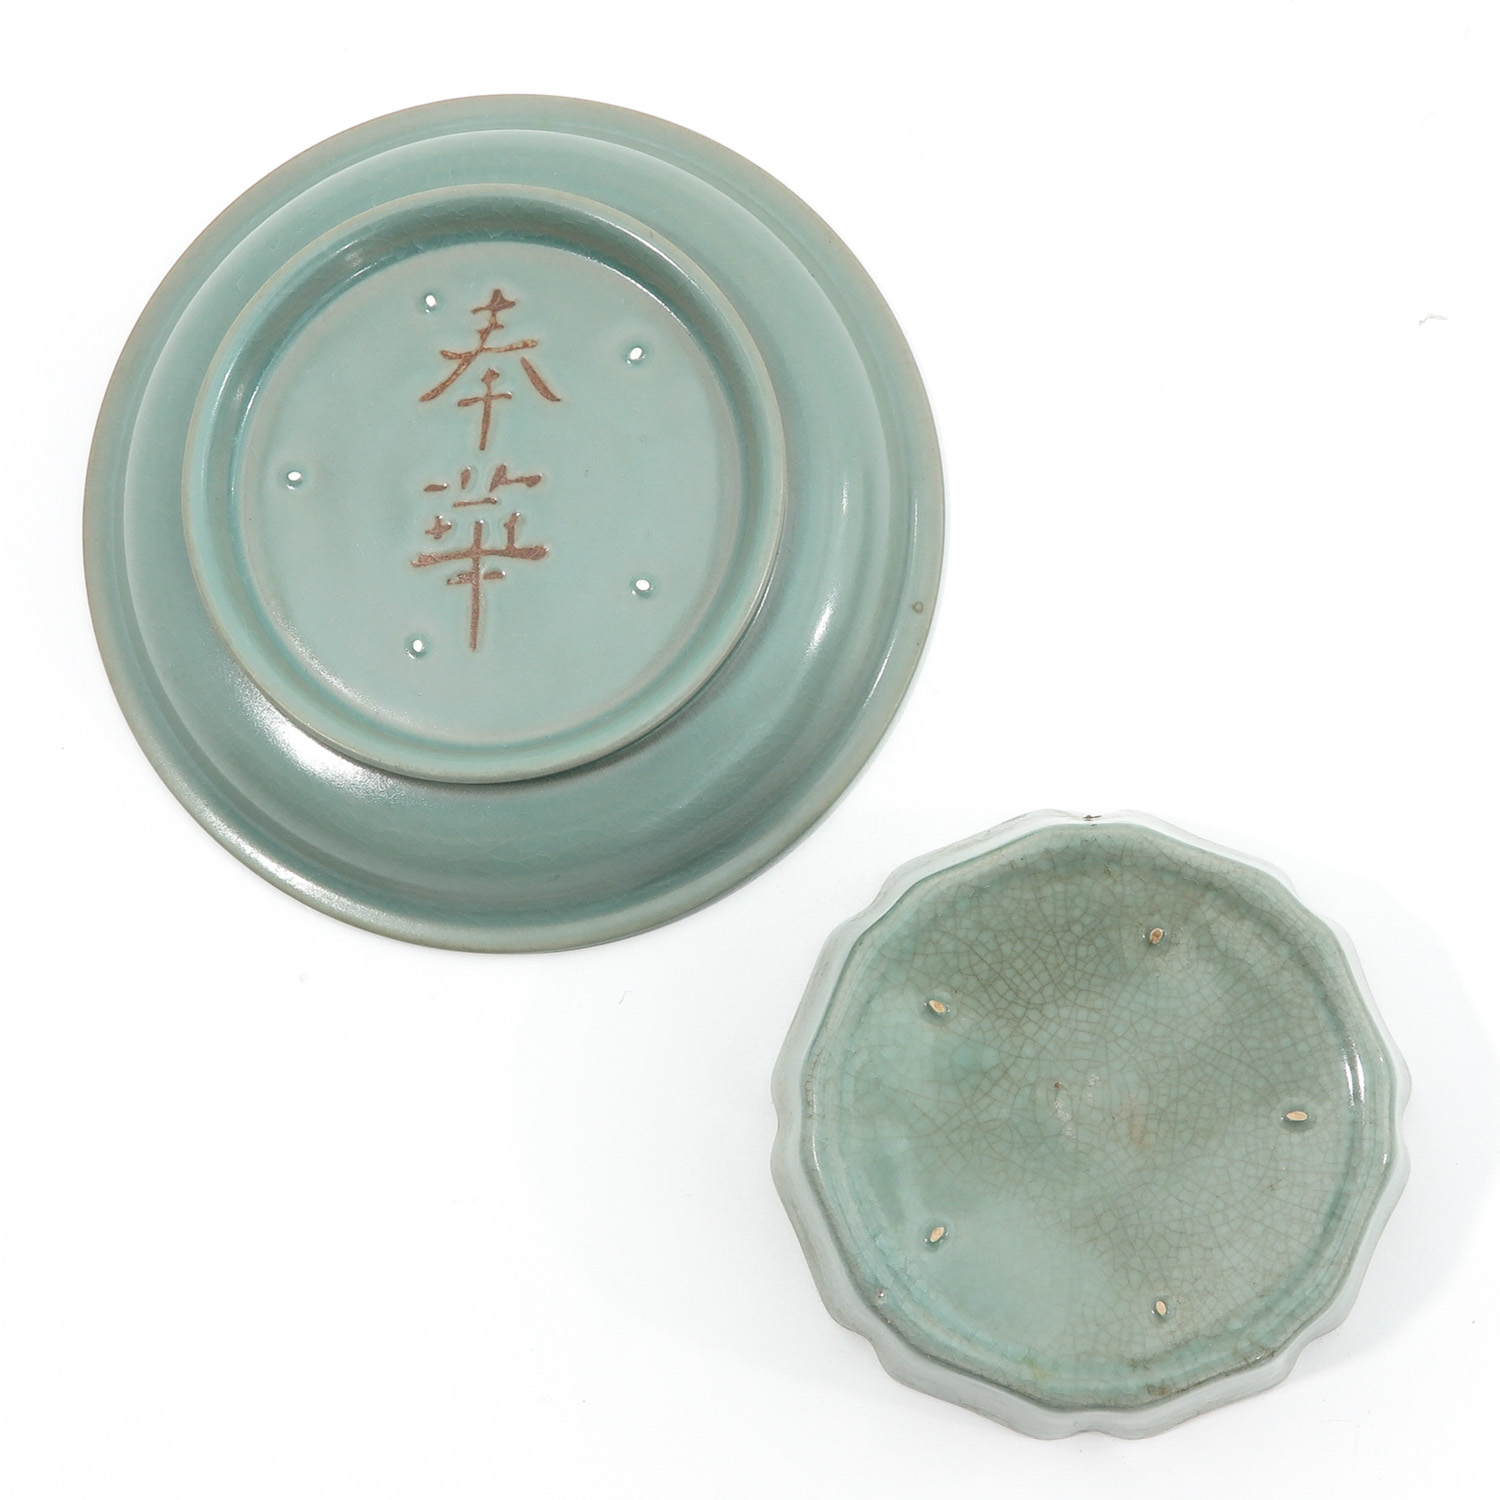 A Celadon Plate and Dish - Image 6 of 10